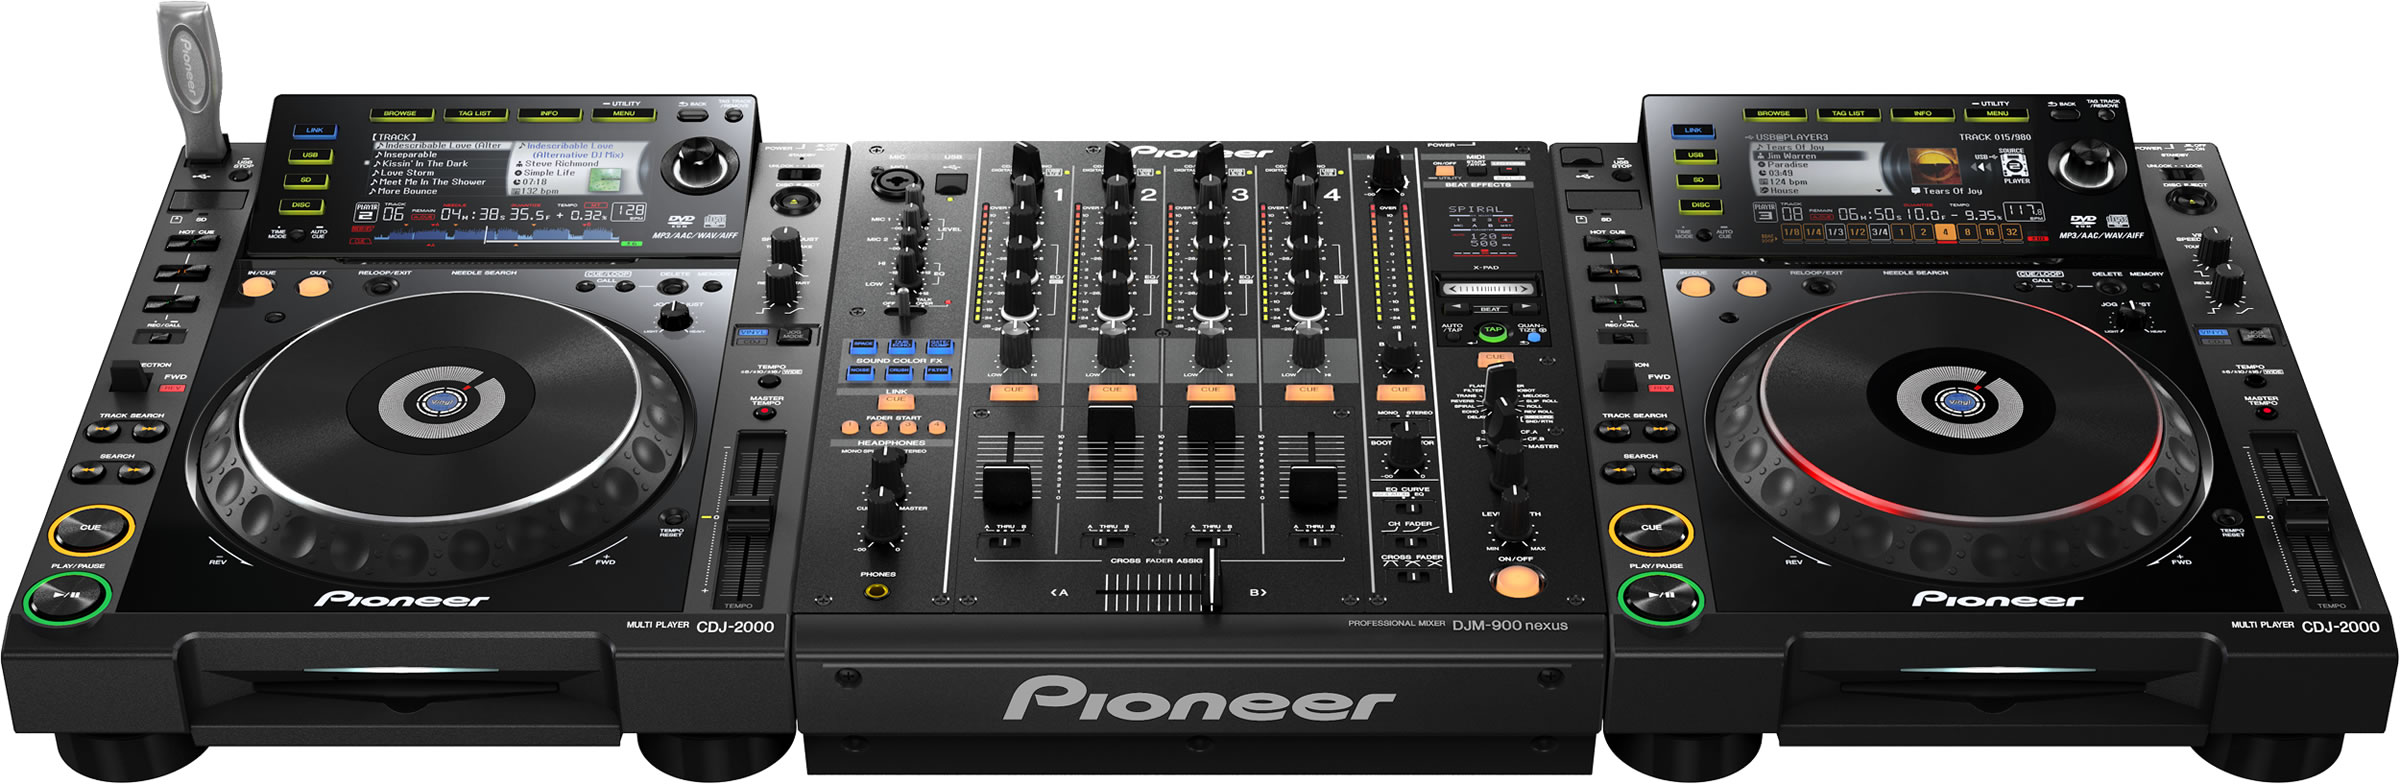 pioneer nexus the new djm 900 dj techtools. Black Bedroom Furniture Sets. Home Design Ideas